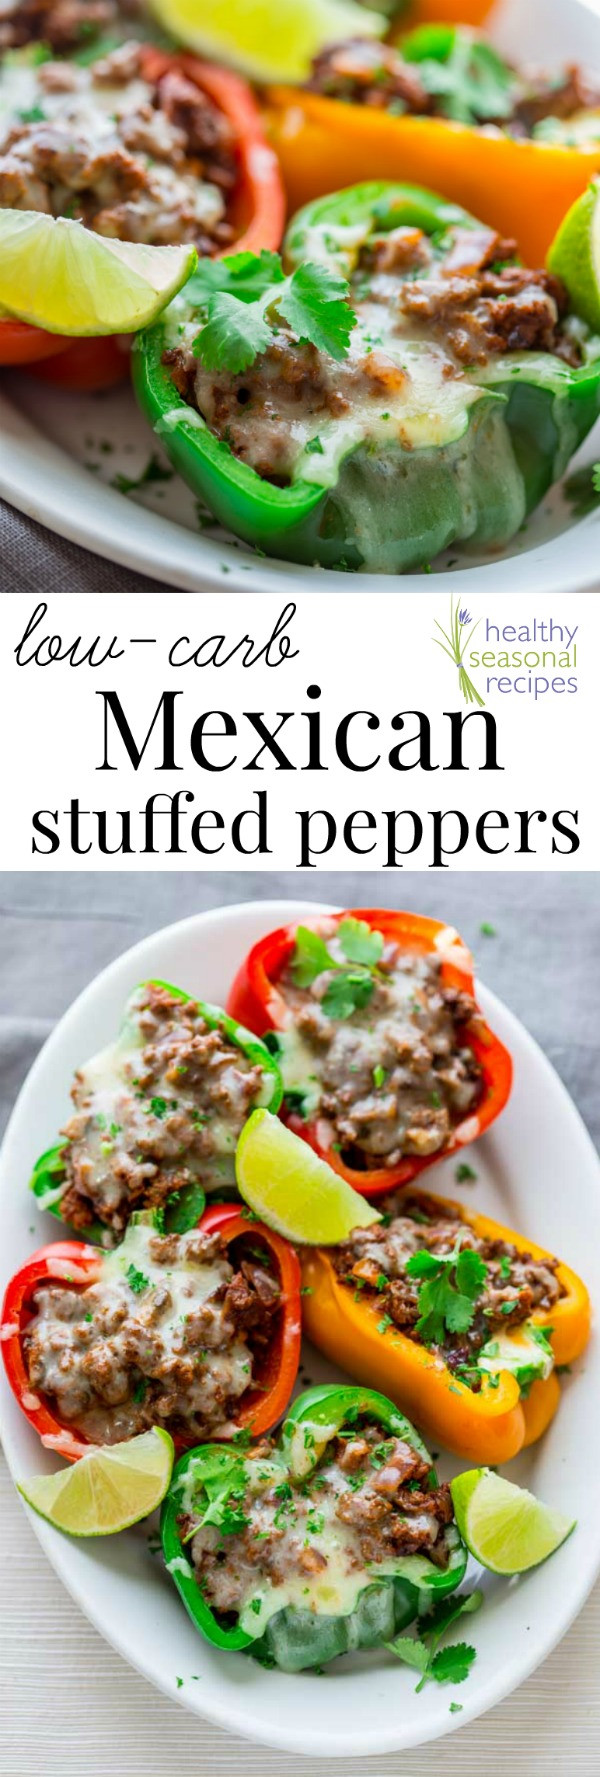 Low Carb Stuffed Bell Peppers  low carb mexican stuffed peppers Healthy Seasonal Recipes